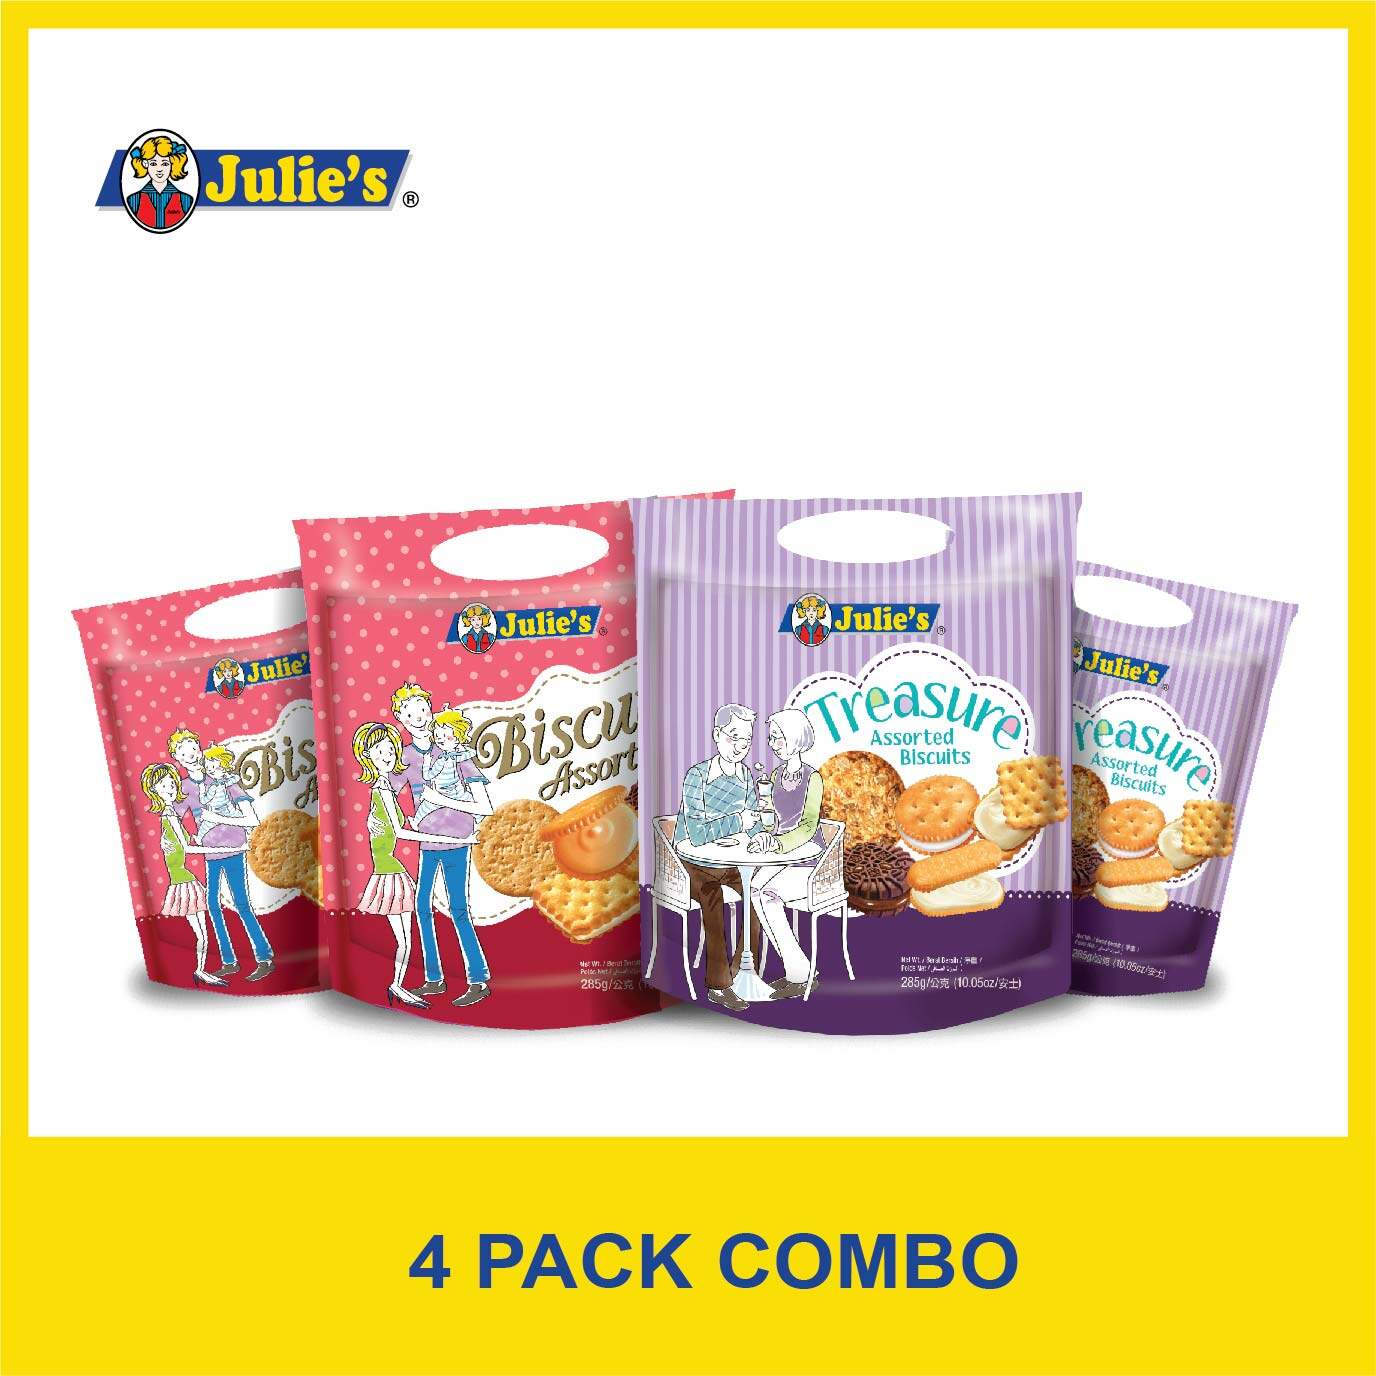 Julie's Assorted Biscuits Combo 285g x 4 packs